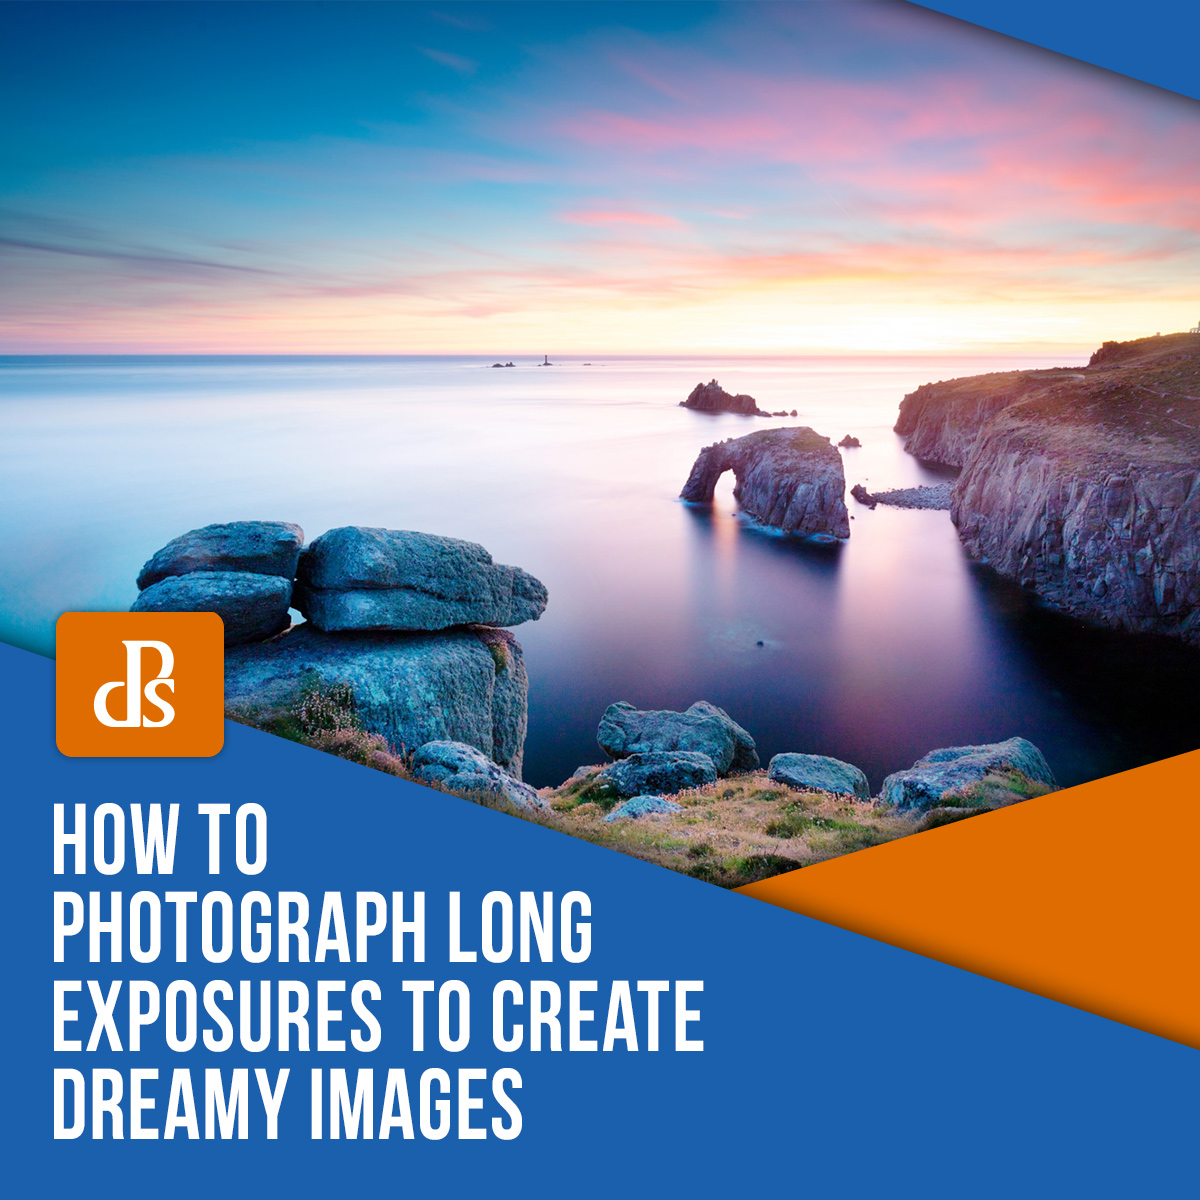 https://i1.wp.com/digital-photography-school.com/wp-content/uploads/2020/06/dps-how-to-photograph-long-exposures.jpg?ssl=1